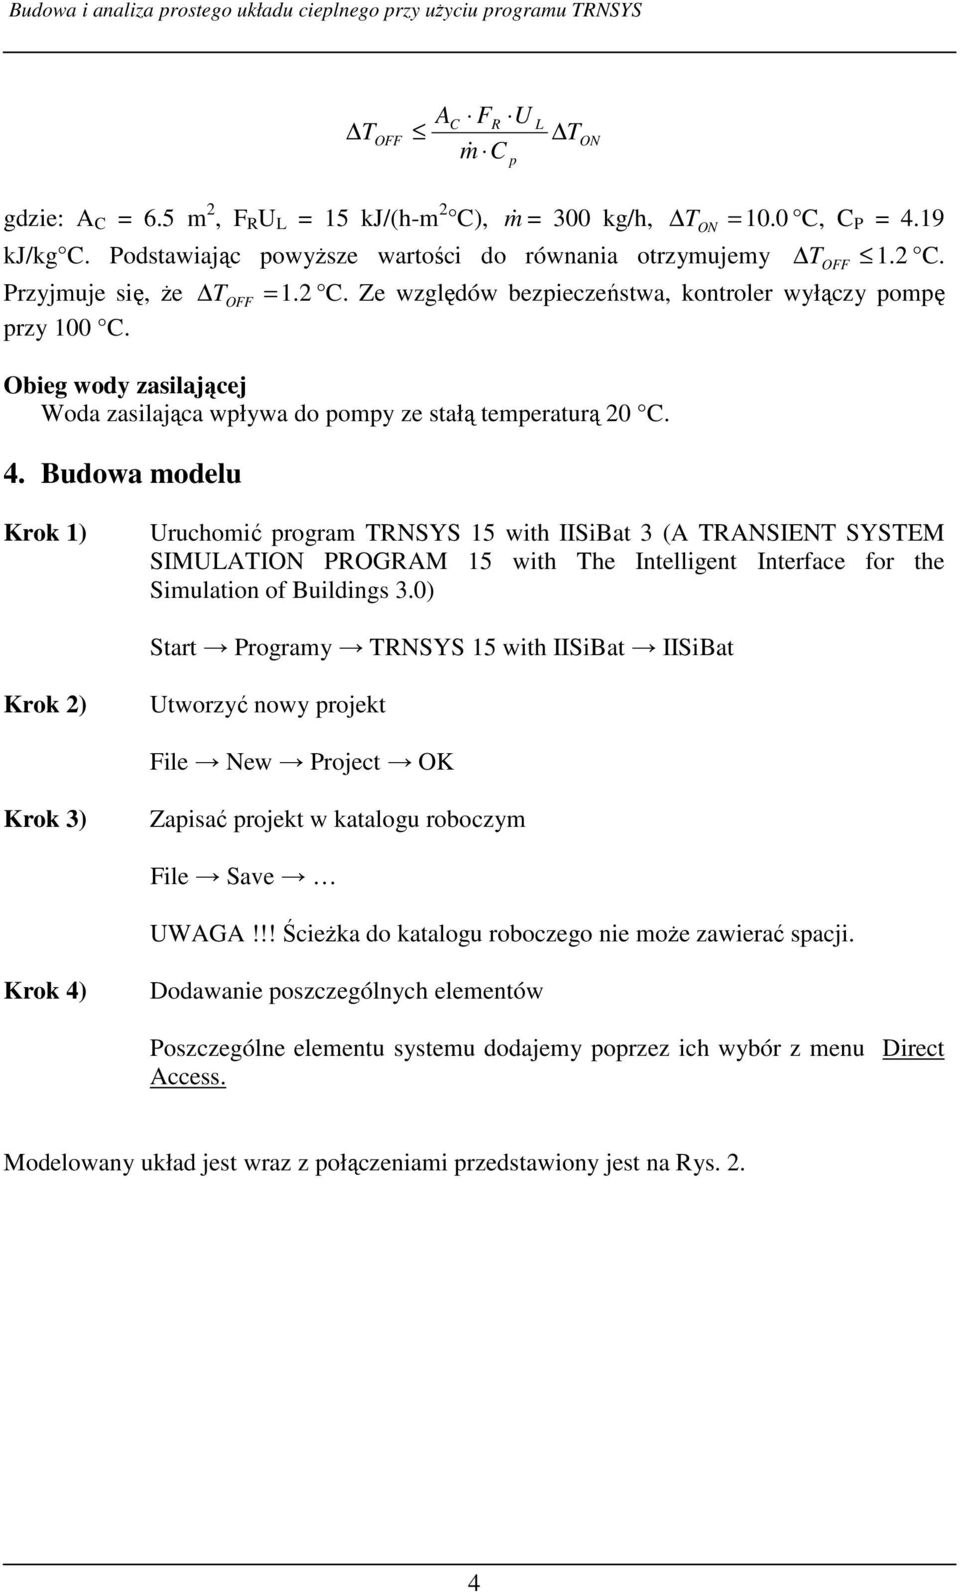 Budowa modelu Krok 1) Uruchomić program TRNSYS 15 with IISiBat 3 (A TRANSIENT SYSTEM SIMULATION PROGRAM 15 with The Intelligent Interface for the Simulation of Buildings 3.